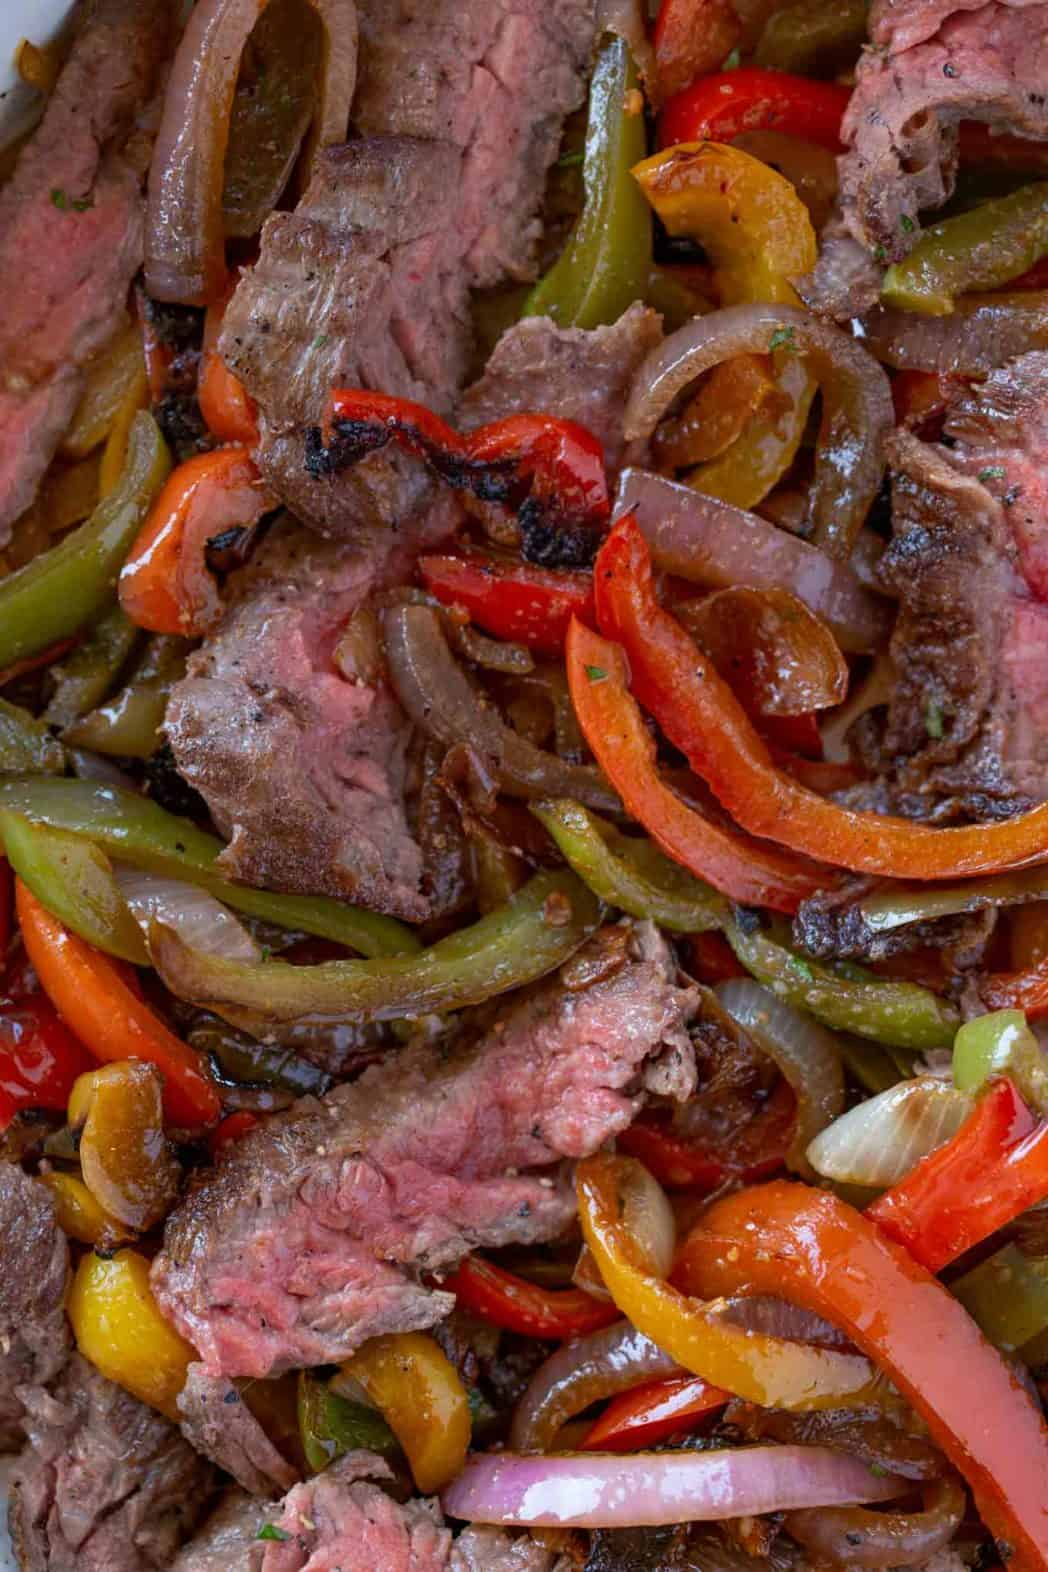 Sliced Steak and fajita vegetables